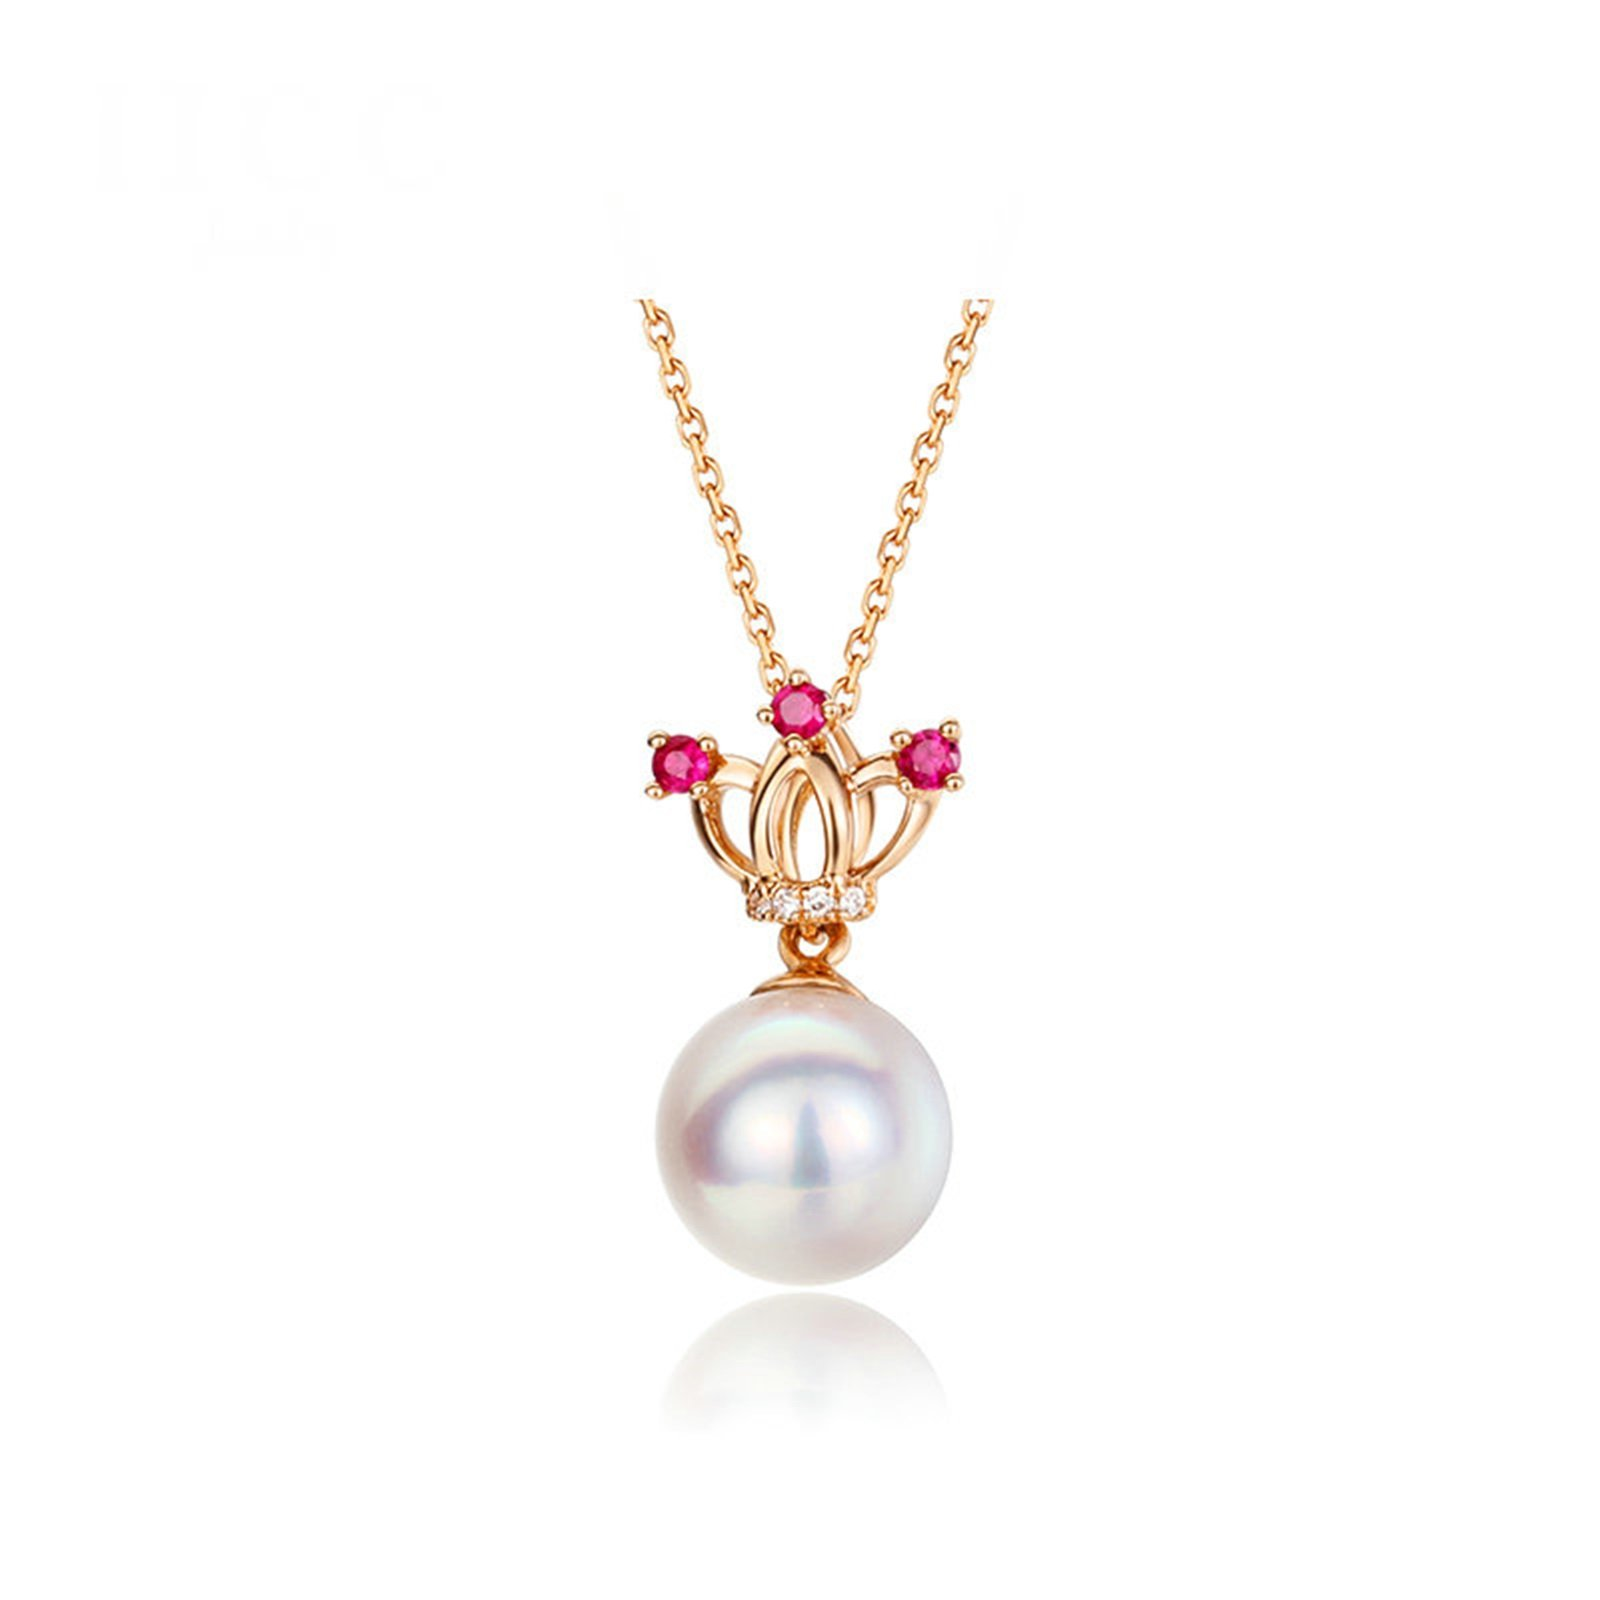 Daesar 18K Gold Necklace For Women Crown Hollow Pearls CZ Pendant Necklace Rose Gold Chain Length: 40CM